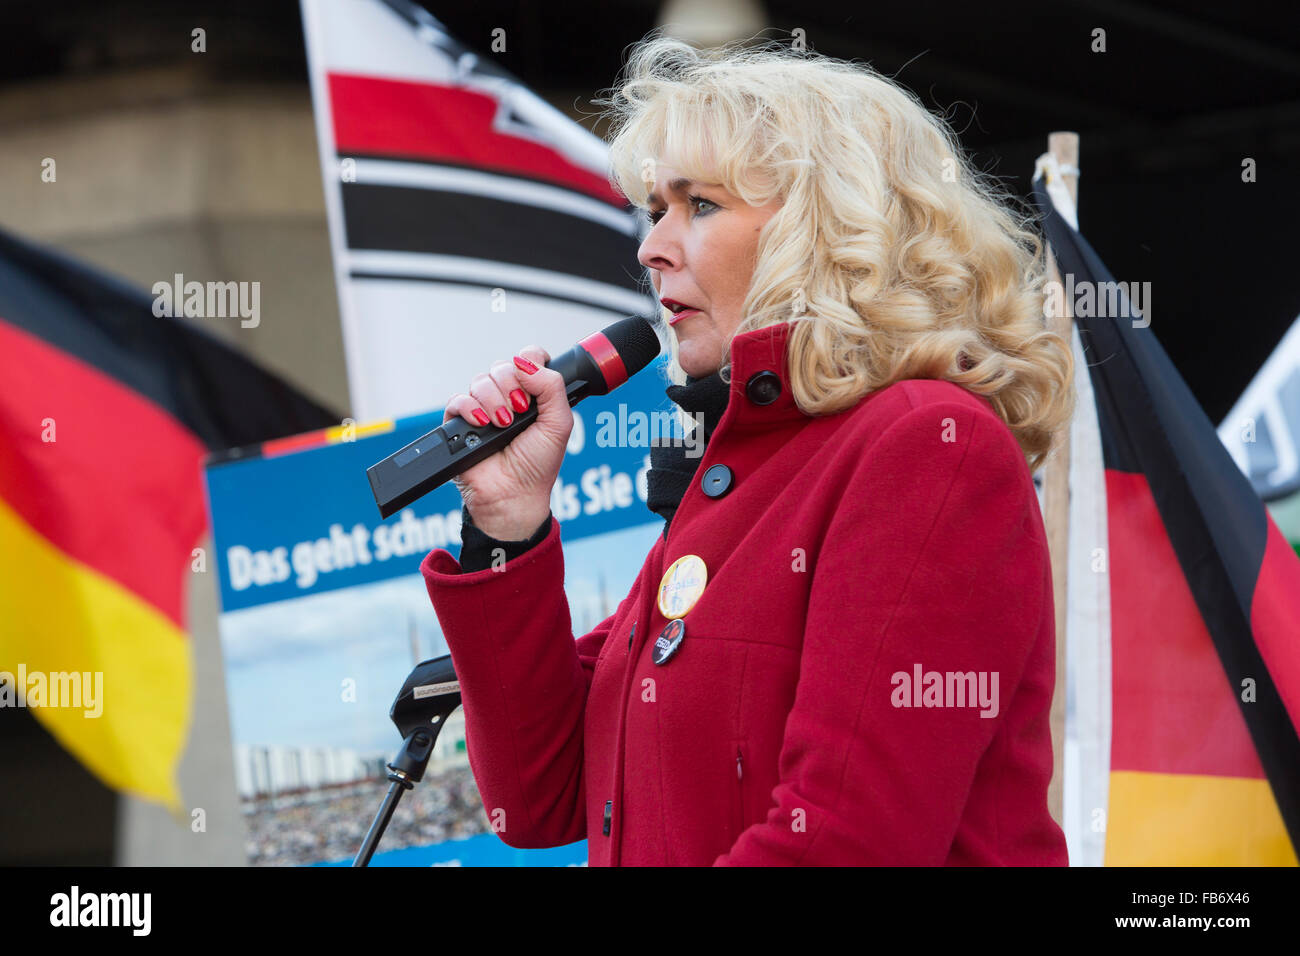 A 'German Woman' speaks at the Pegida manifestation. - Stock Image